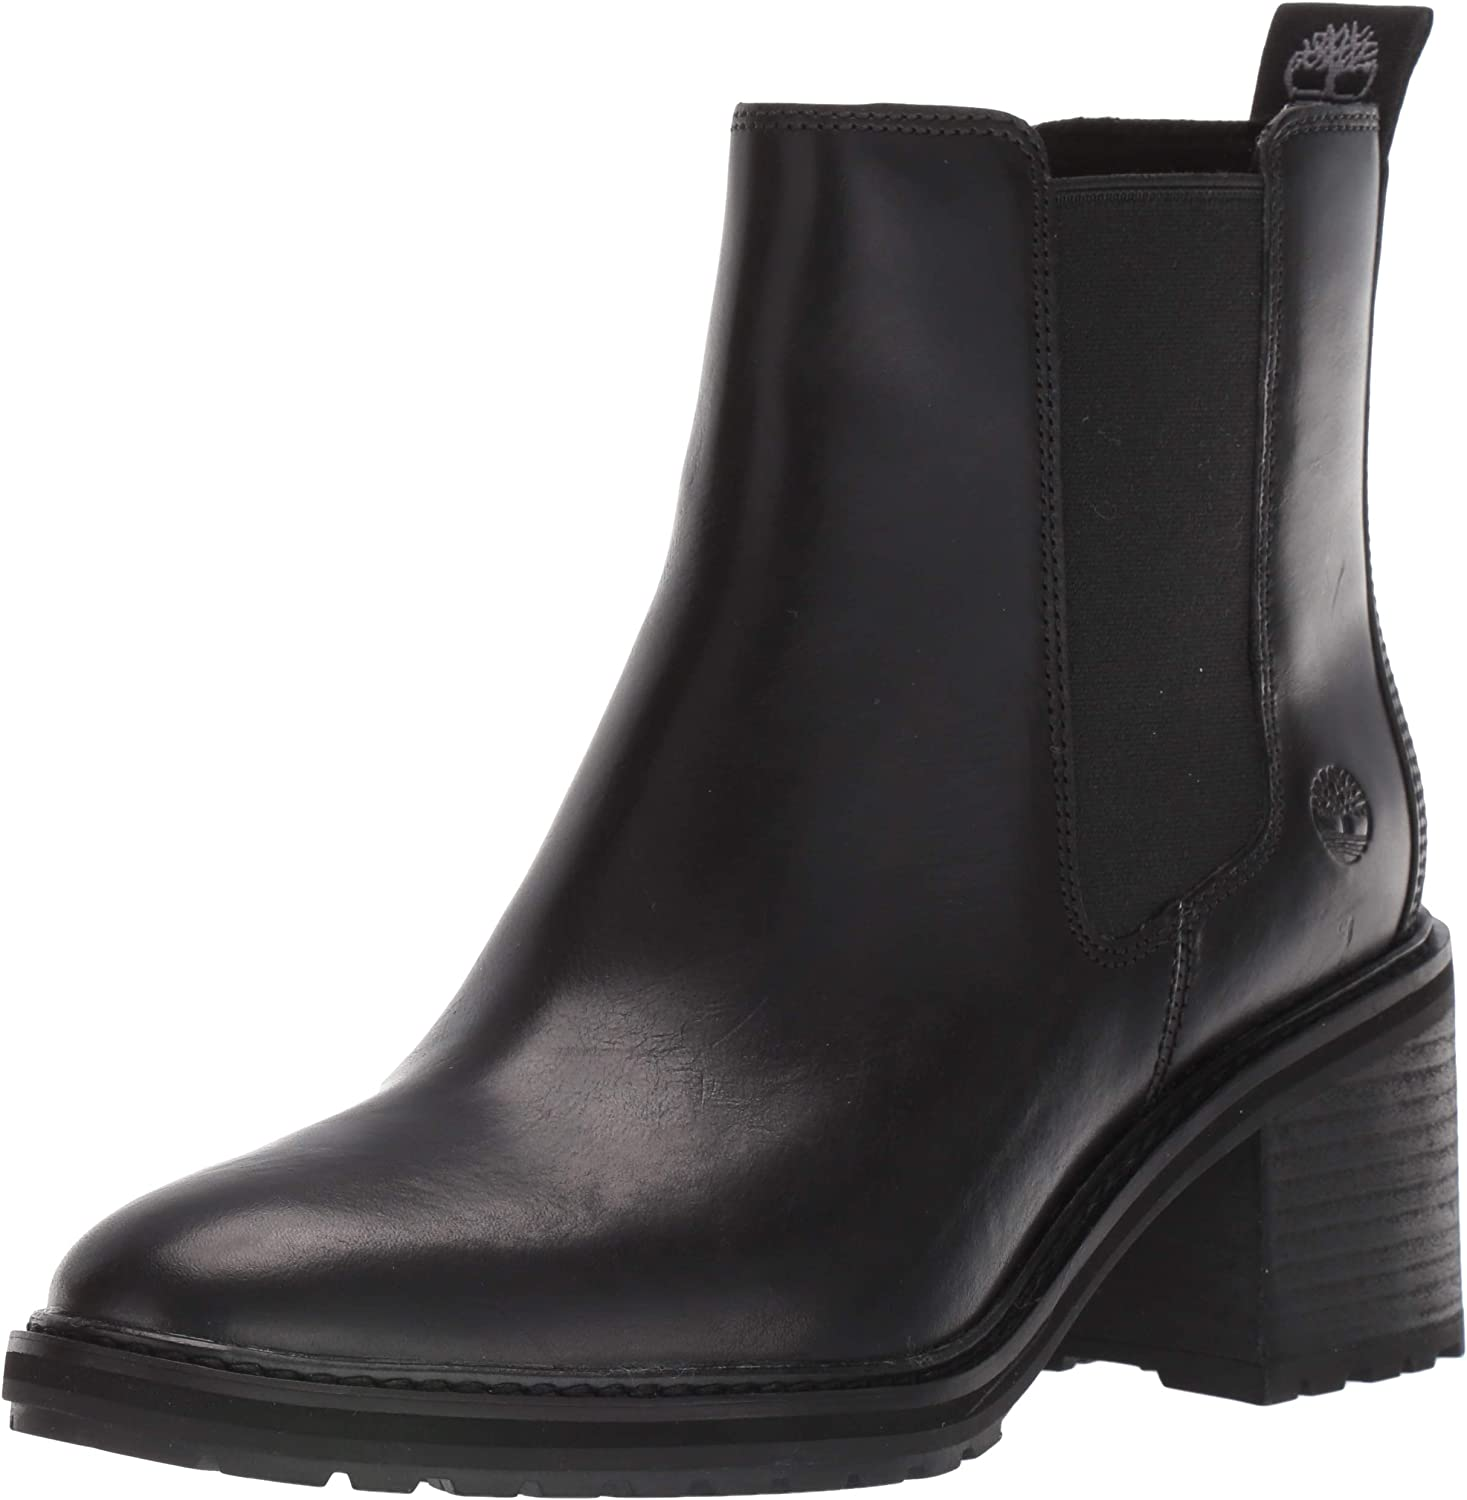 Reservation Timberland NEW before selling ☆ Women's Sienna High Fashion Chelsea Boot